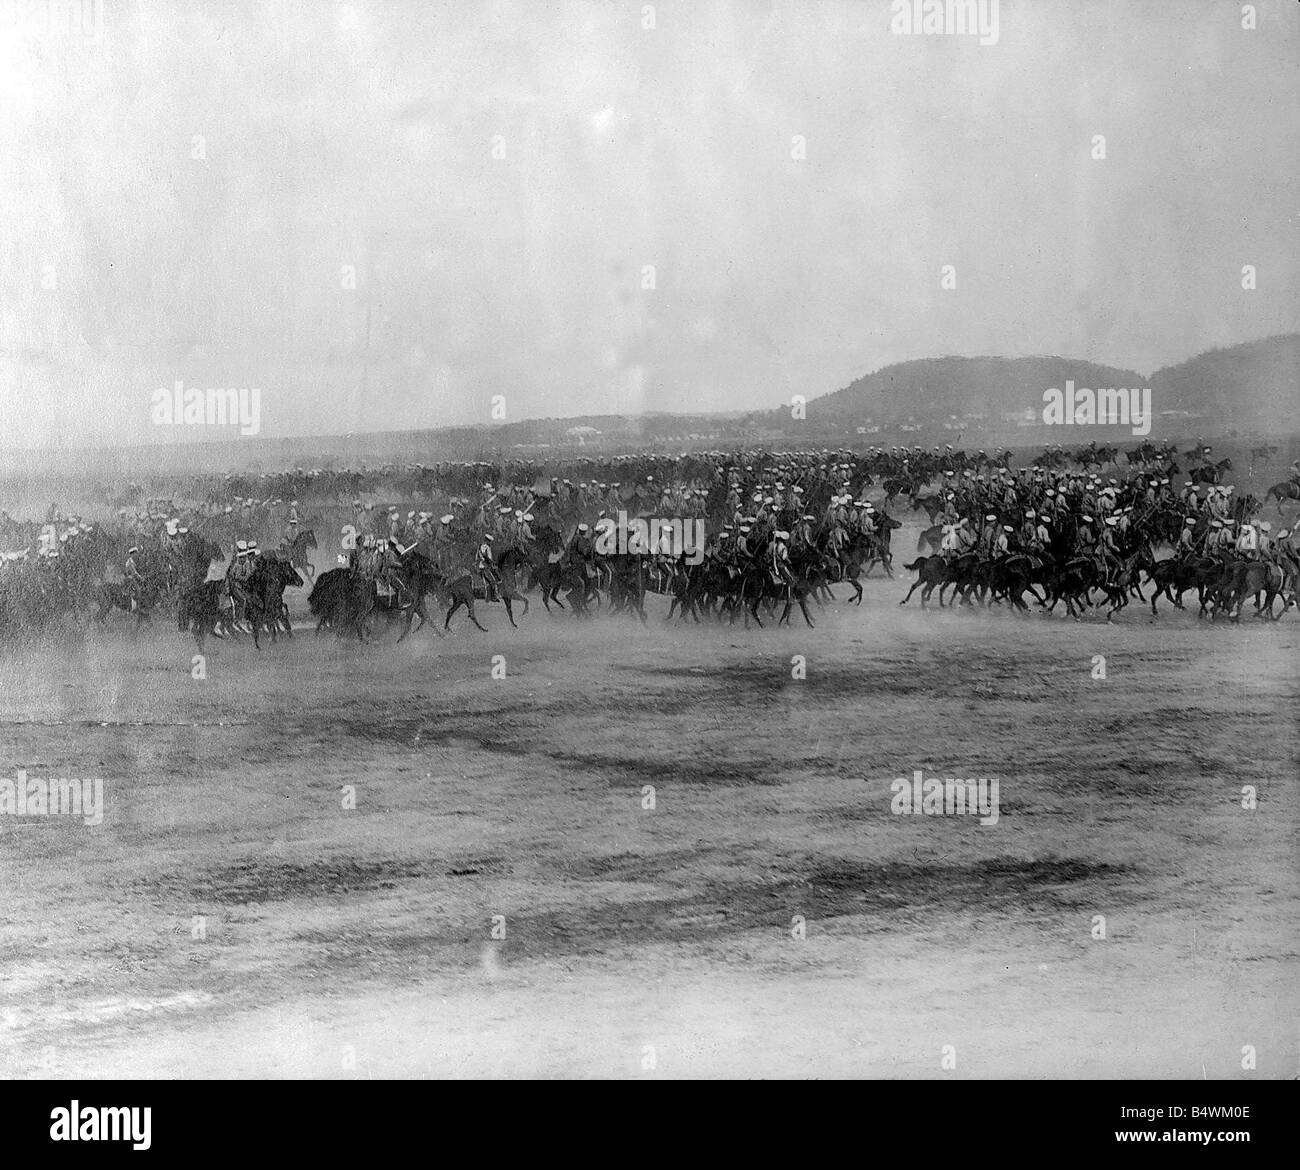 World War I Russian cavalry 3rd march 1918 Bolshevik Russia signs the Treaty of Brest Litovsk with the Central Powers - Stock Image